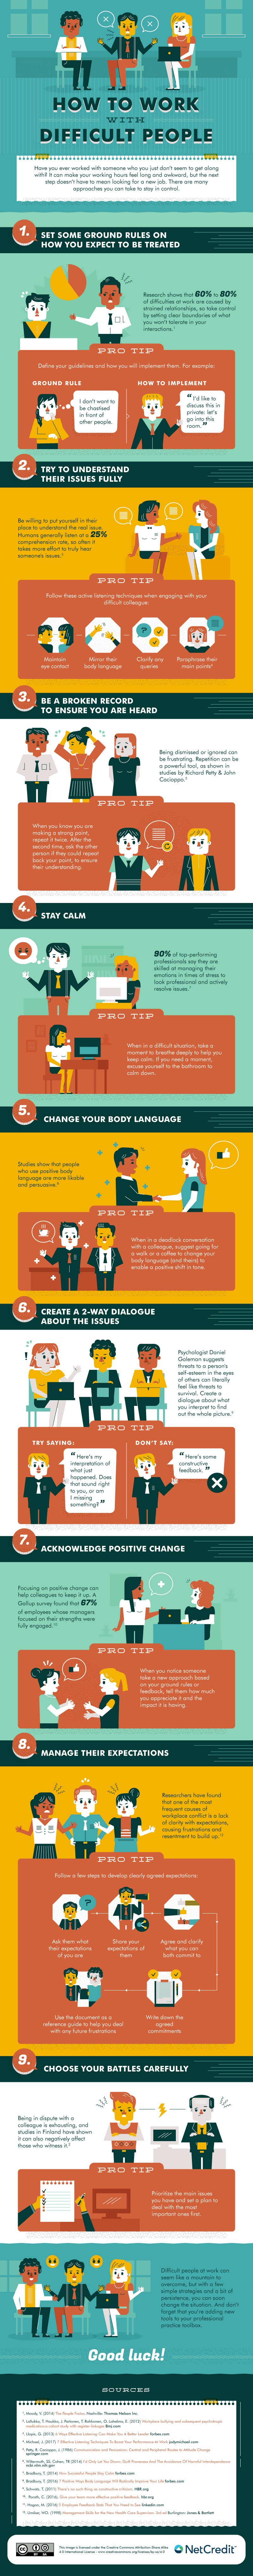 Ways to Work With Difficult People